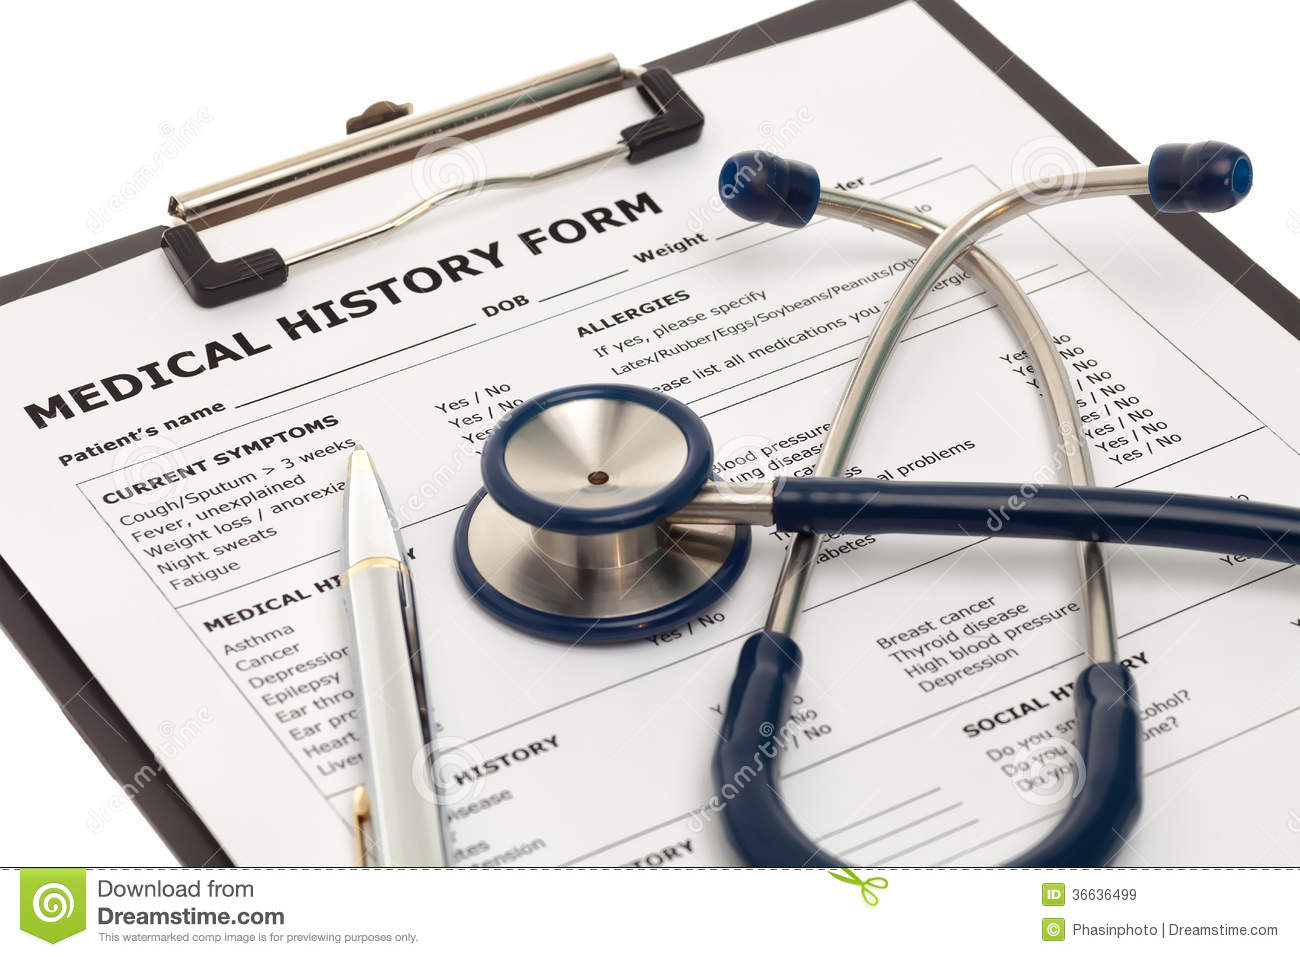 Patient Medical History Document Stock Image - Image: 36636499